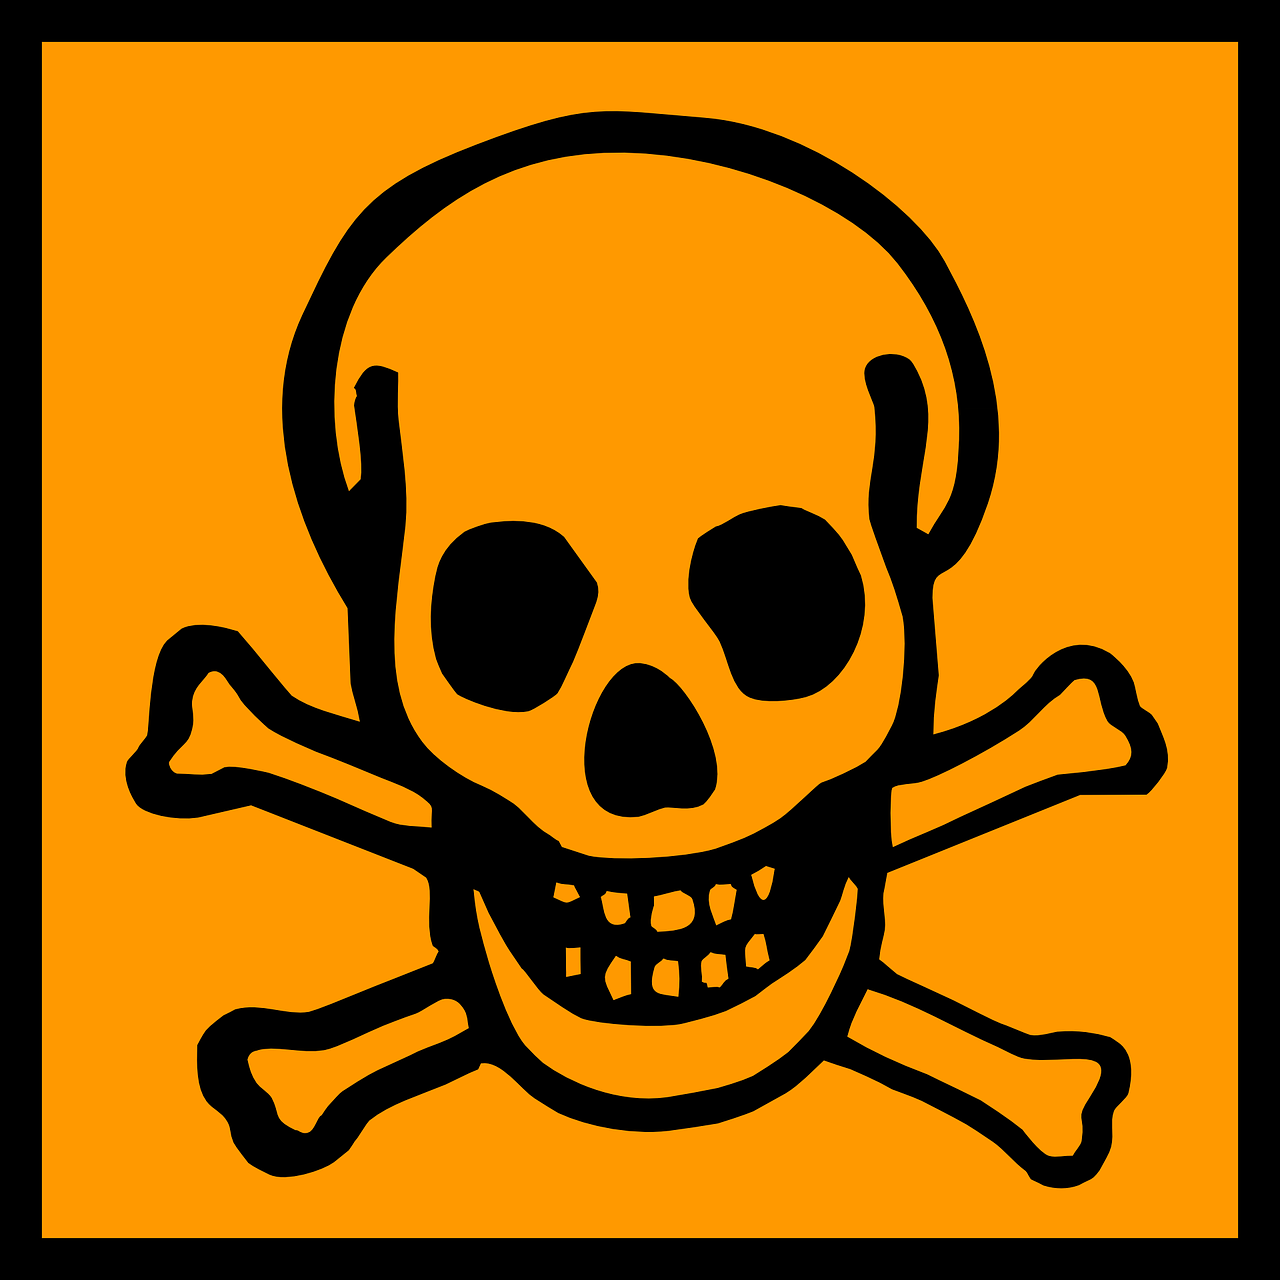 deadly-98846_1280-1280x1280.png